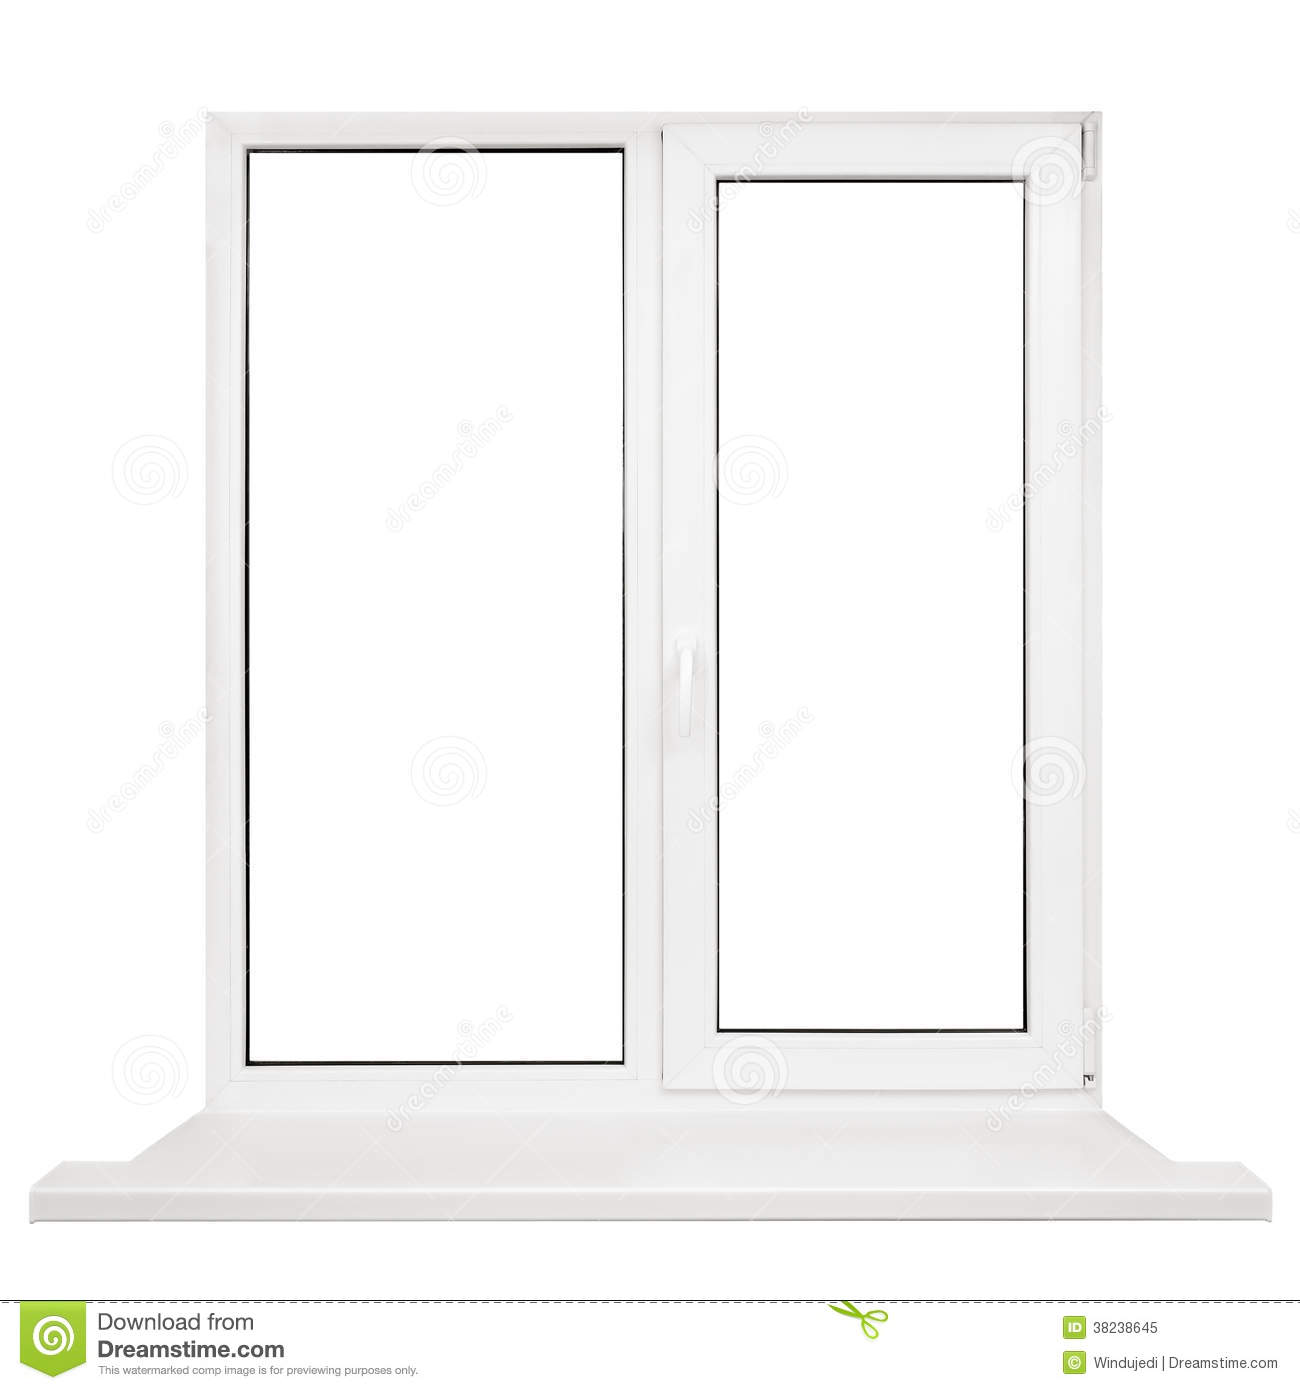 Plastic window frame stock image image of window nobody for Window plastic